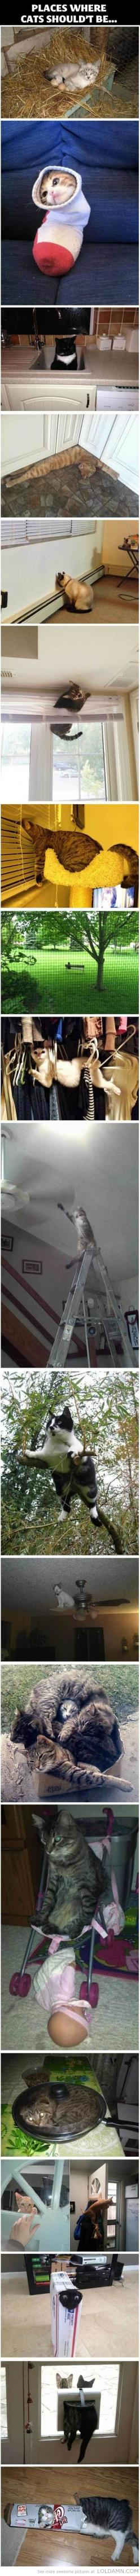 Places where cats shouldn't be... but go anyway, because they don't care: I Love Cats, Funny Cats, Crazy Cat, So Funny, Cats Shouldn T, Kitty, Animal, Cat Lady